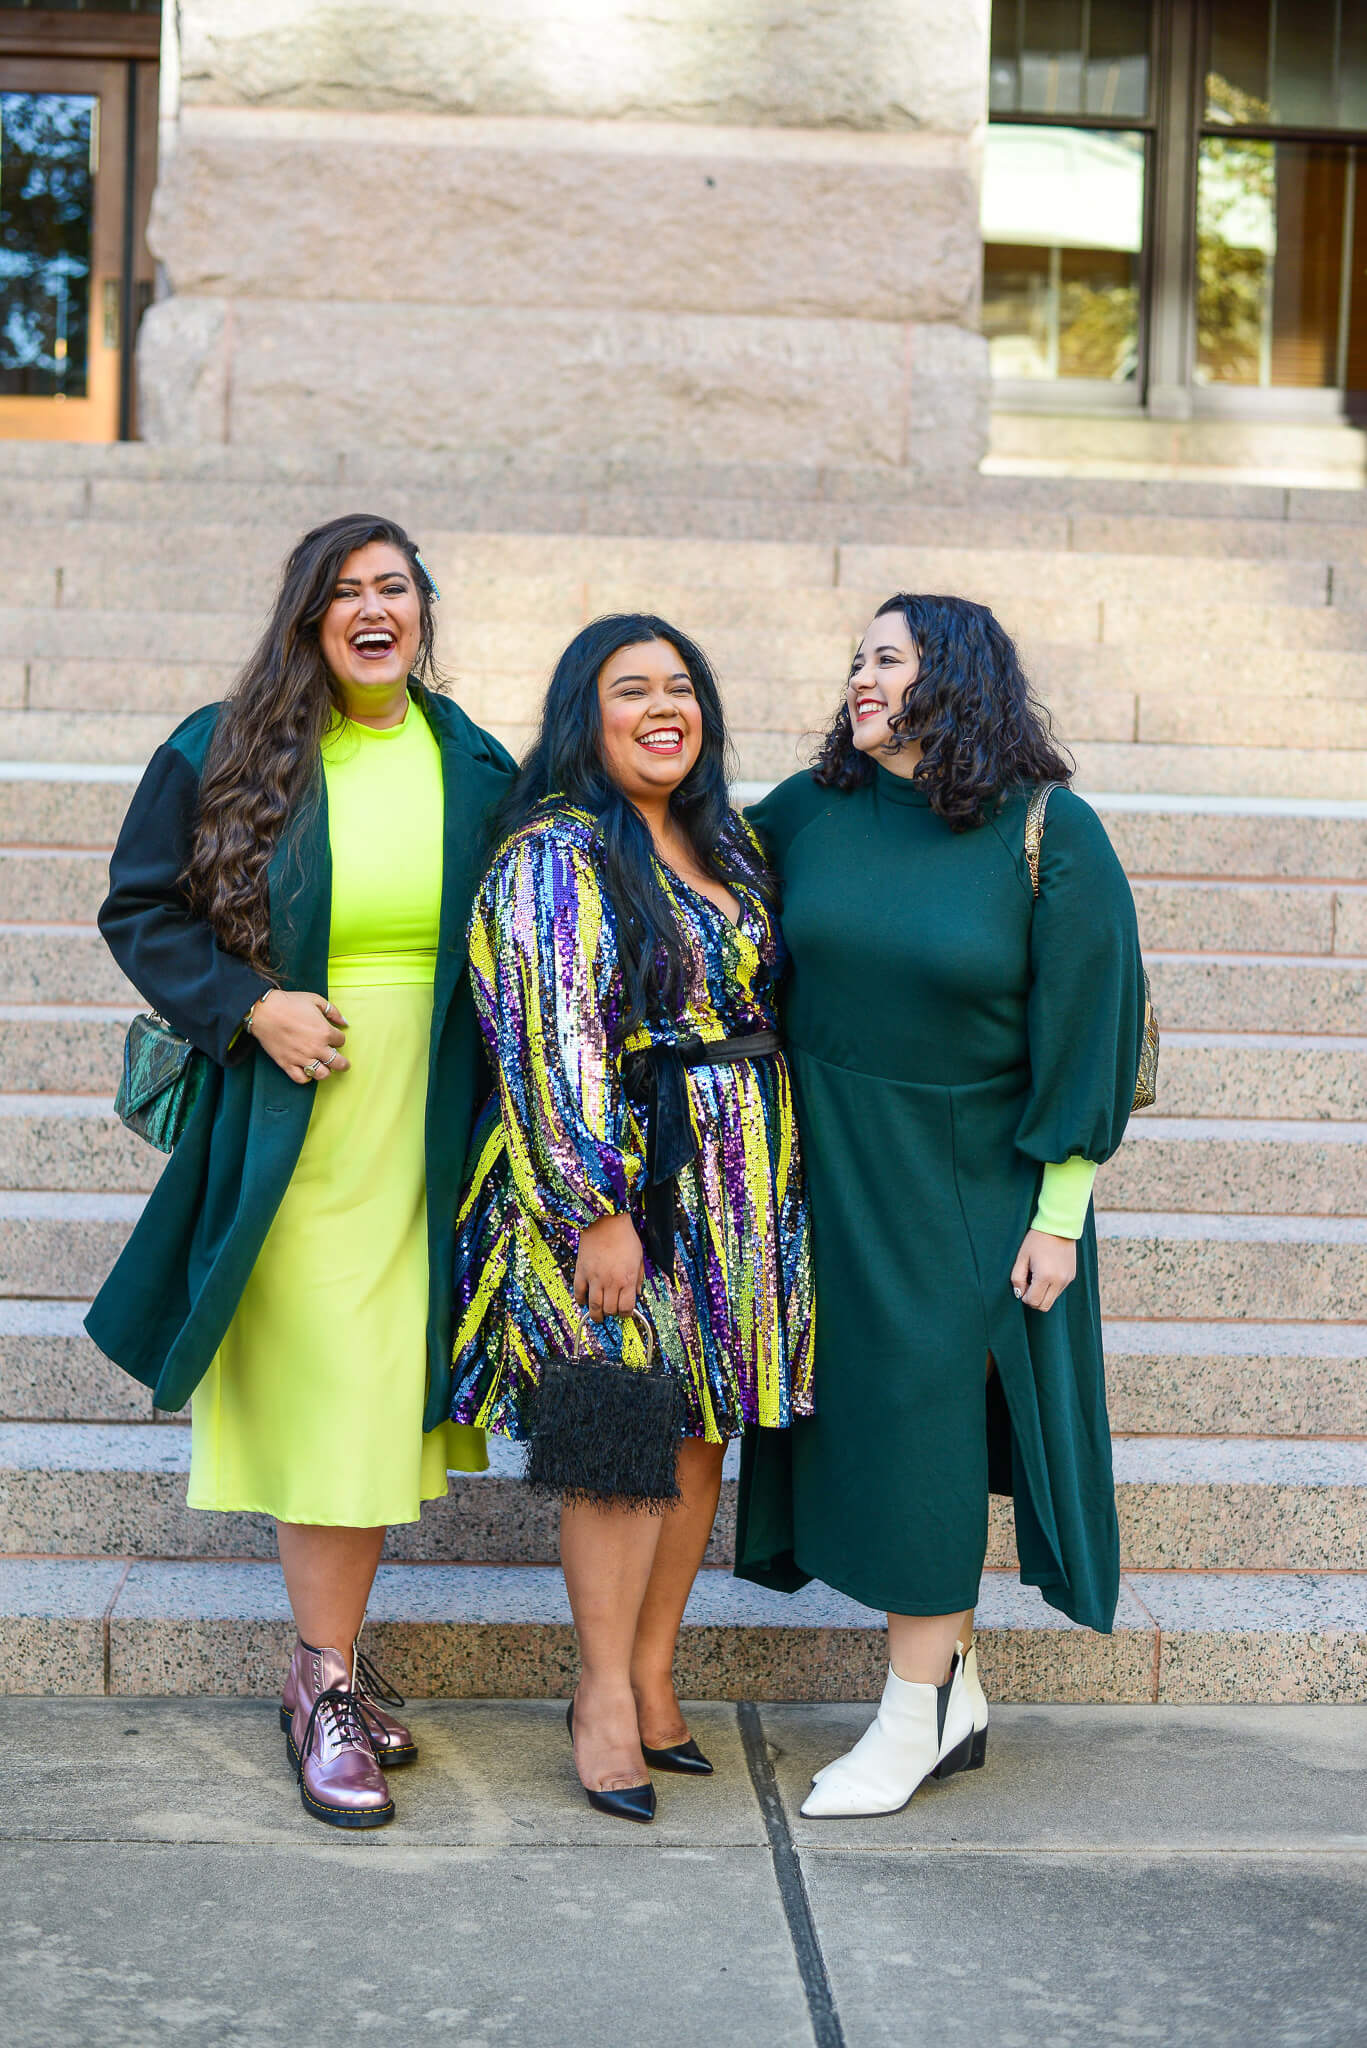 What to wear on a girl's weekend trip plus size